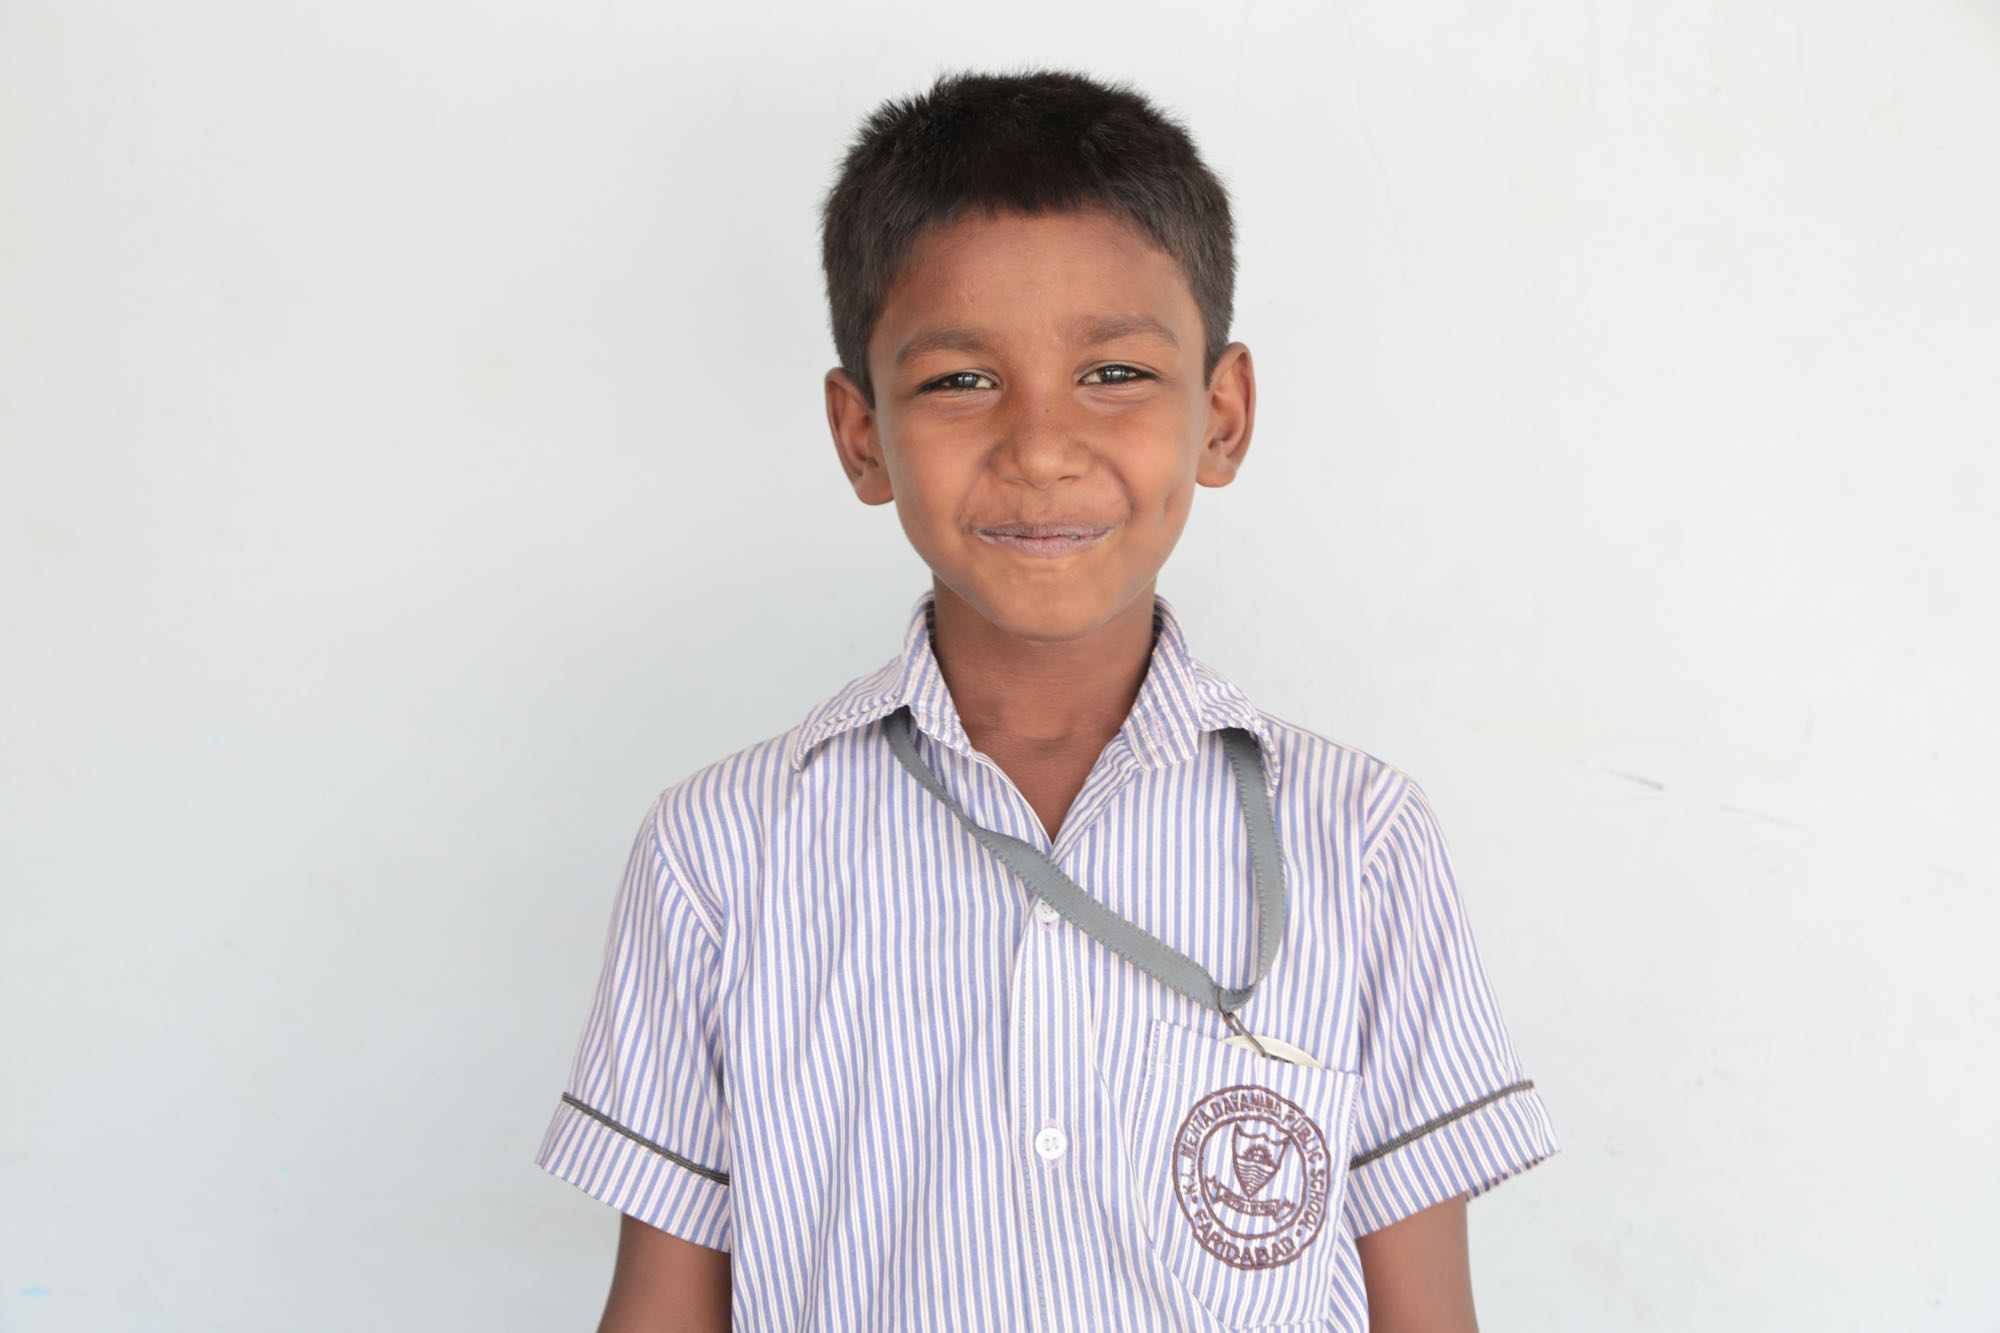 Satyam - (S2S-064)Currently in need of sponsorship. Click here to sponsor Satyam or another scholar for just $30/month!Sponsored previously by the Lin family